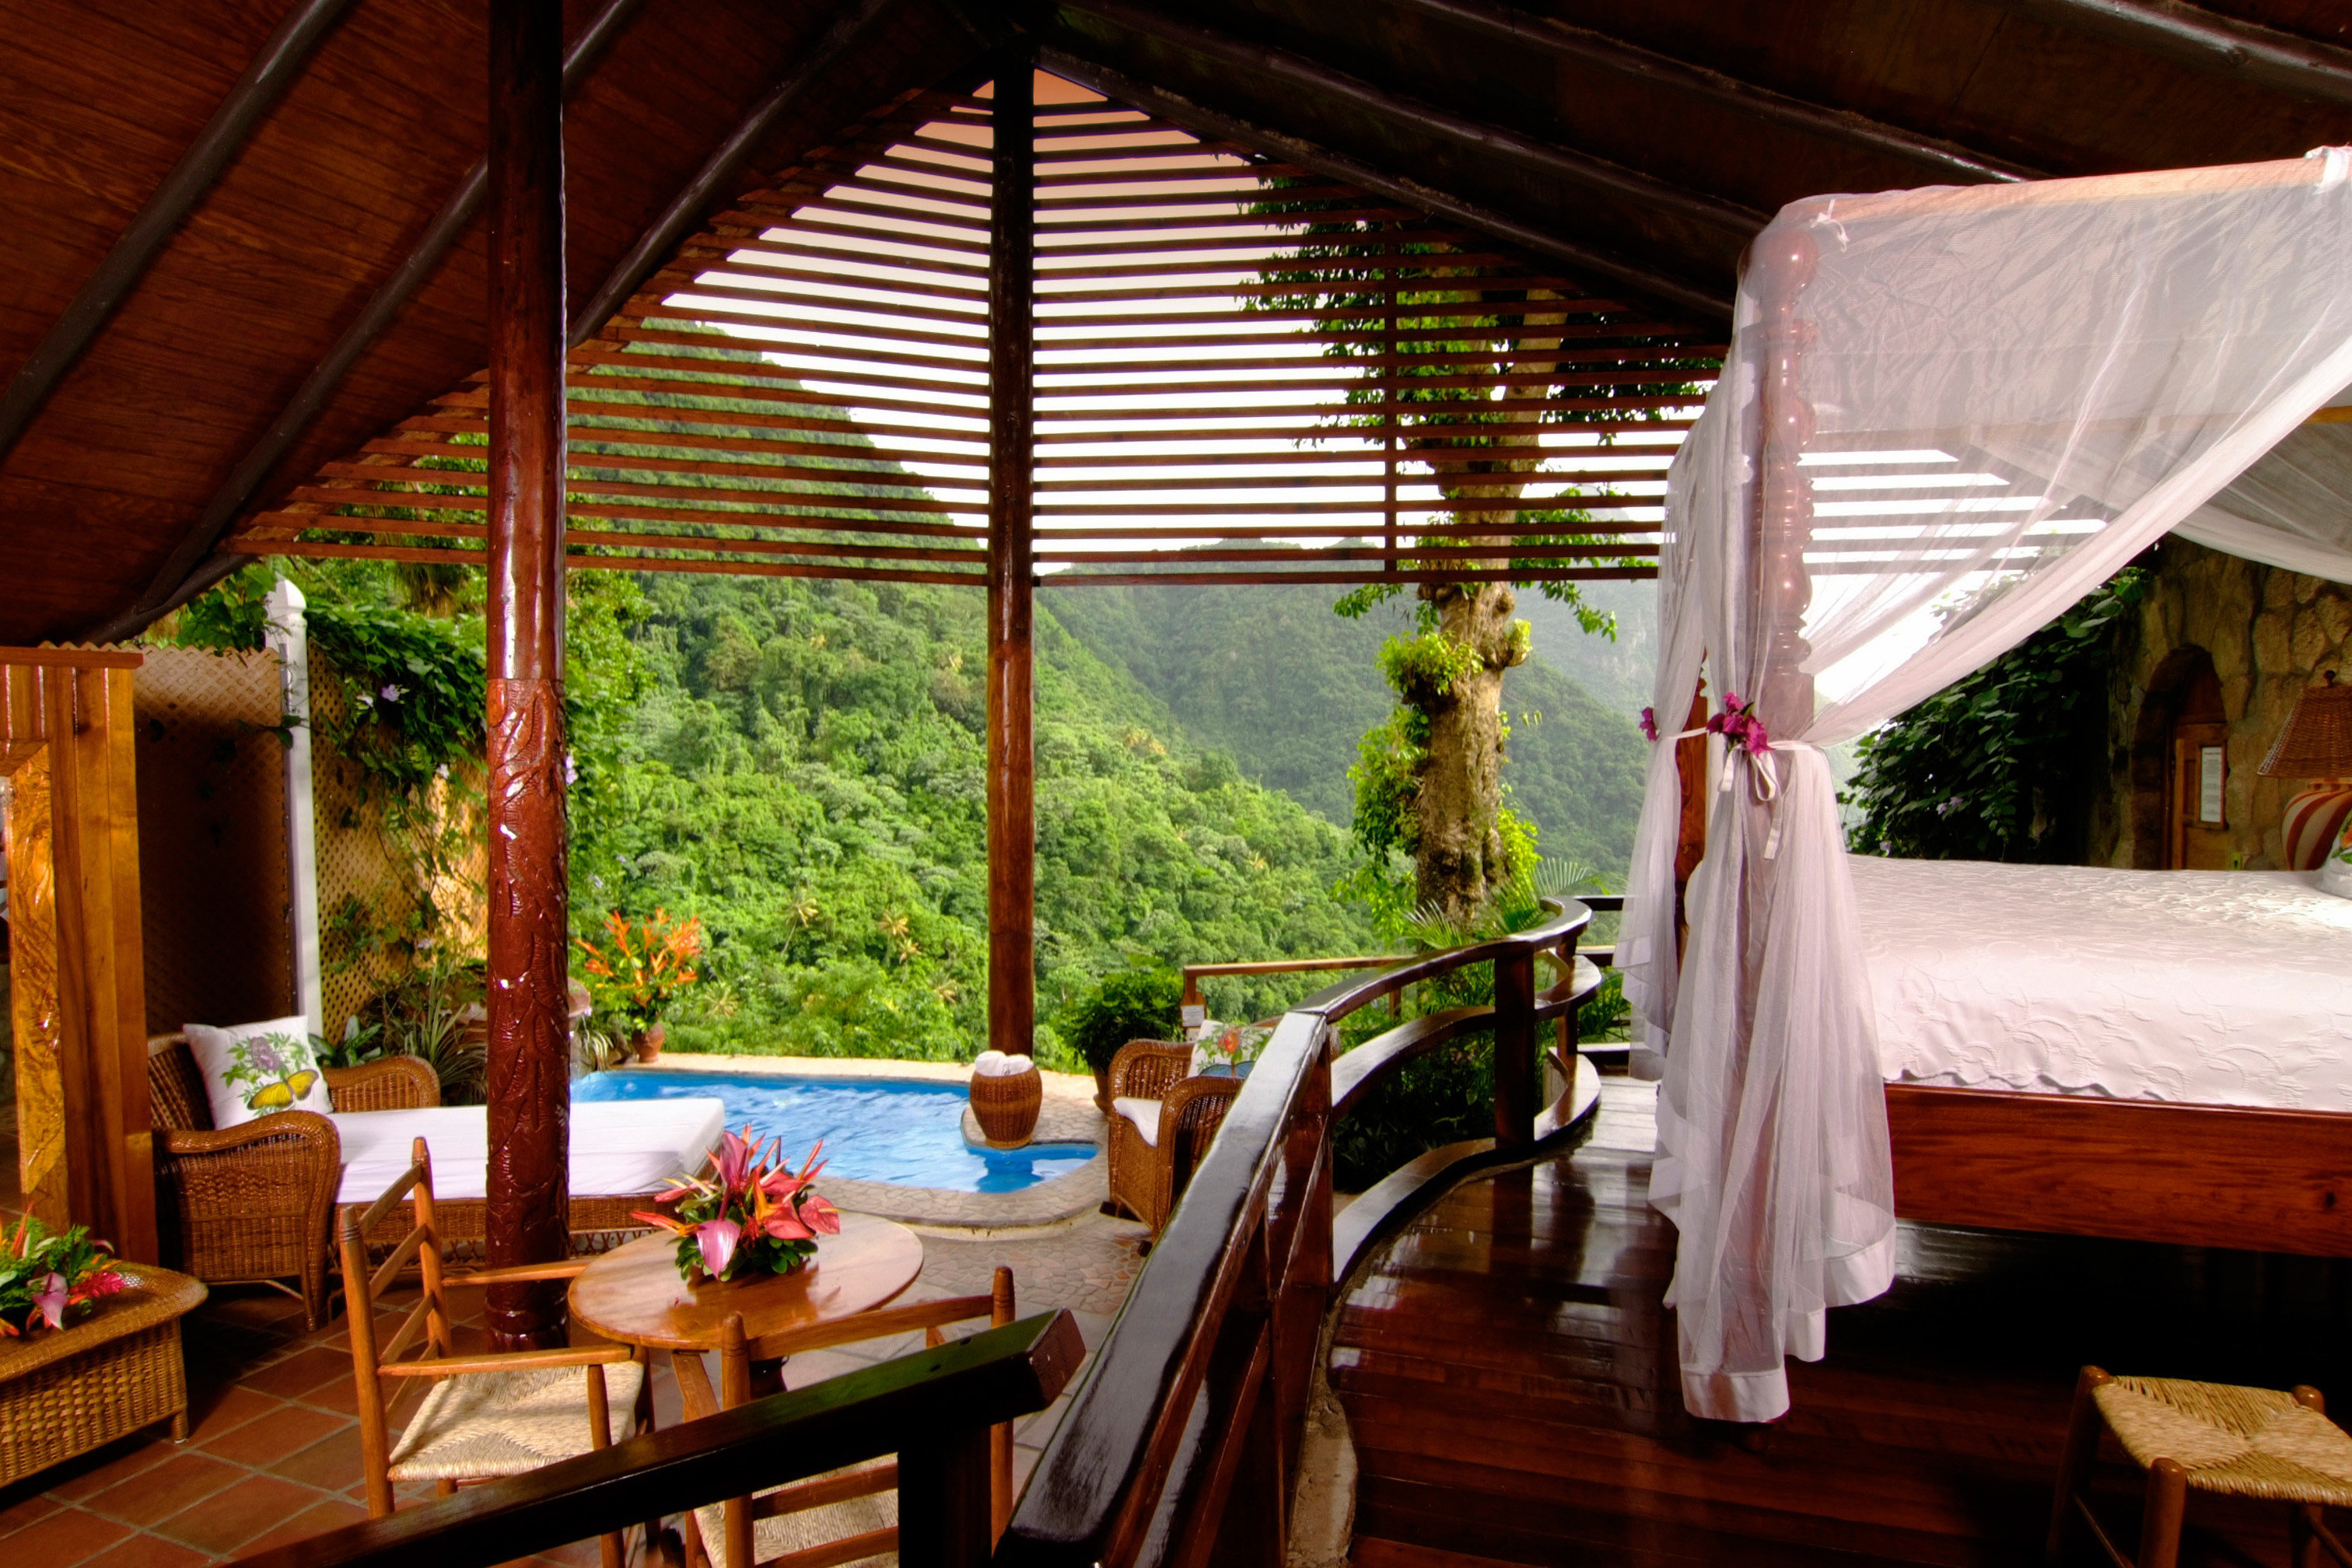 Adult-only Bedroom Honeymoon Luxury Resort Romance Scenic views chair wooden cottage Villa restaurant backyard porch